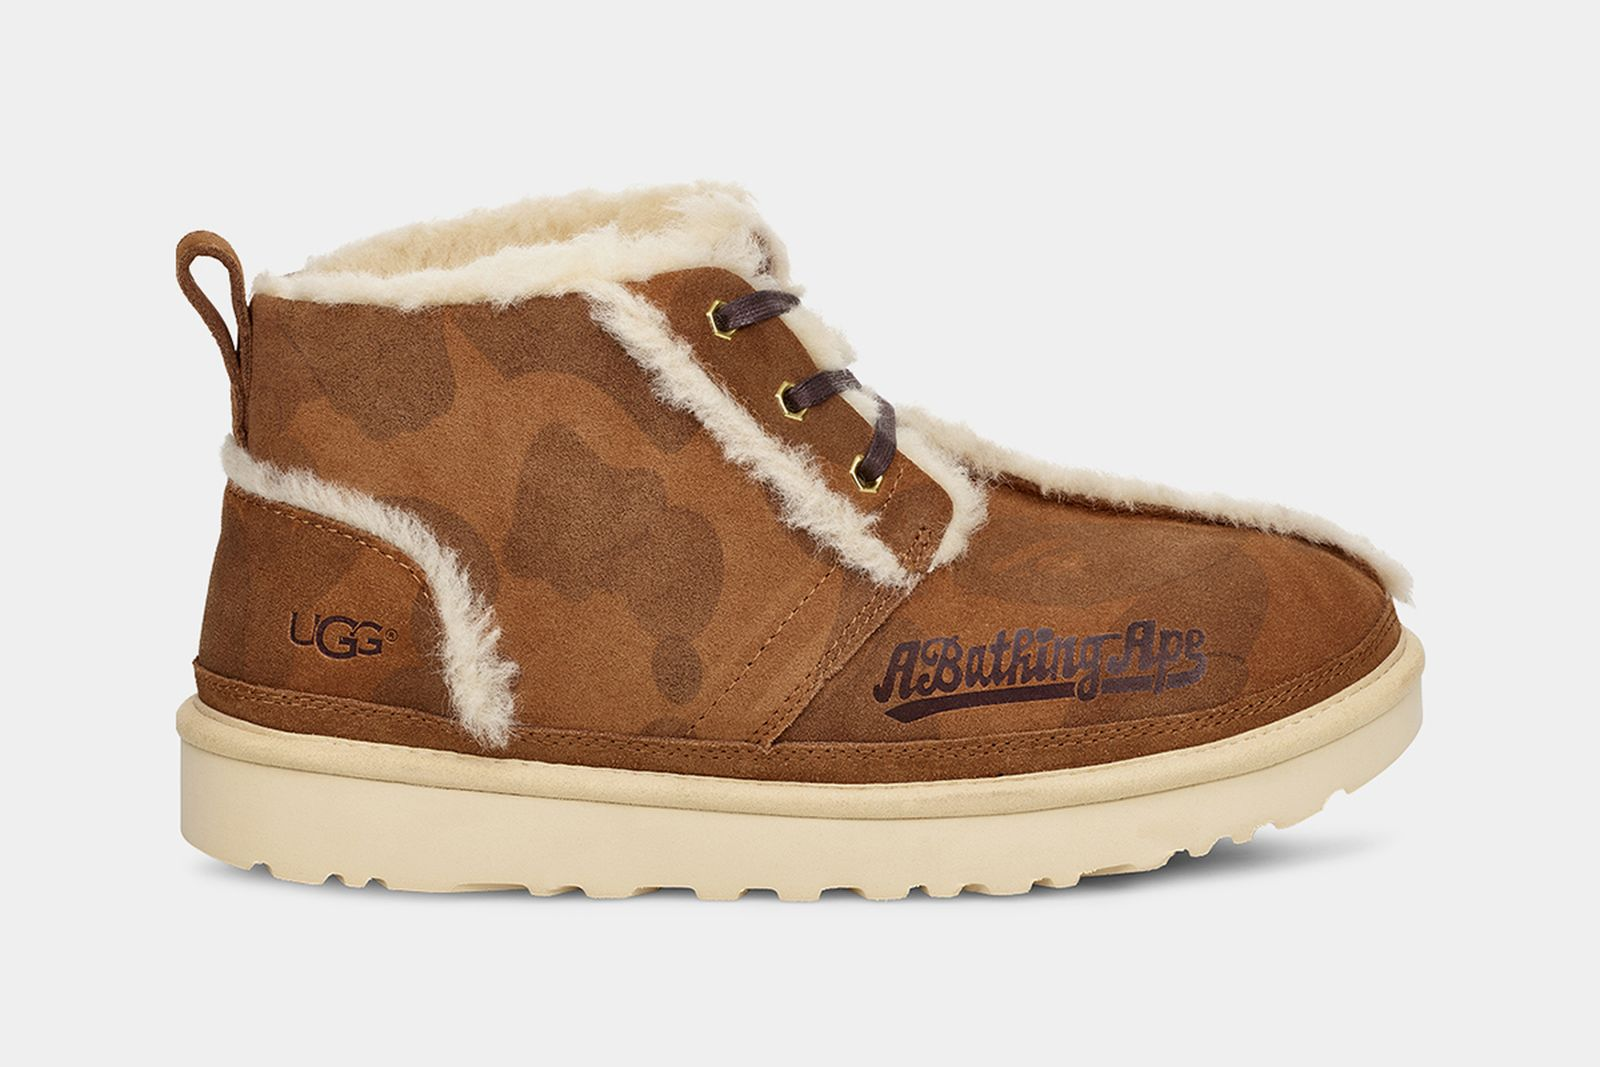 bape-ugg-fw19-release-date-price-04